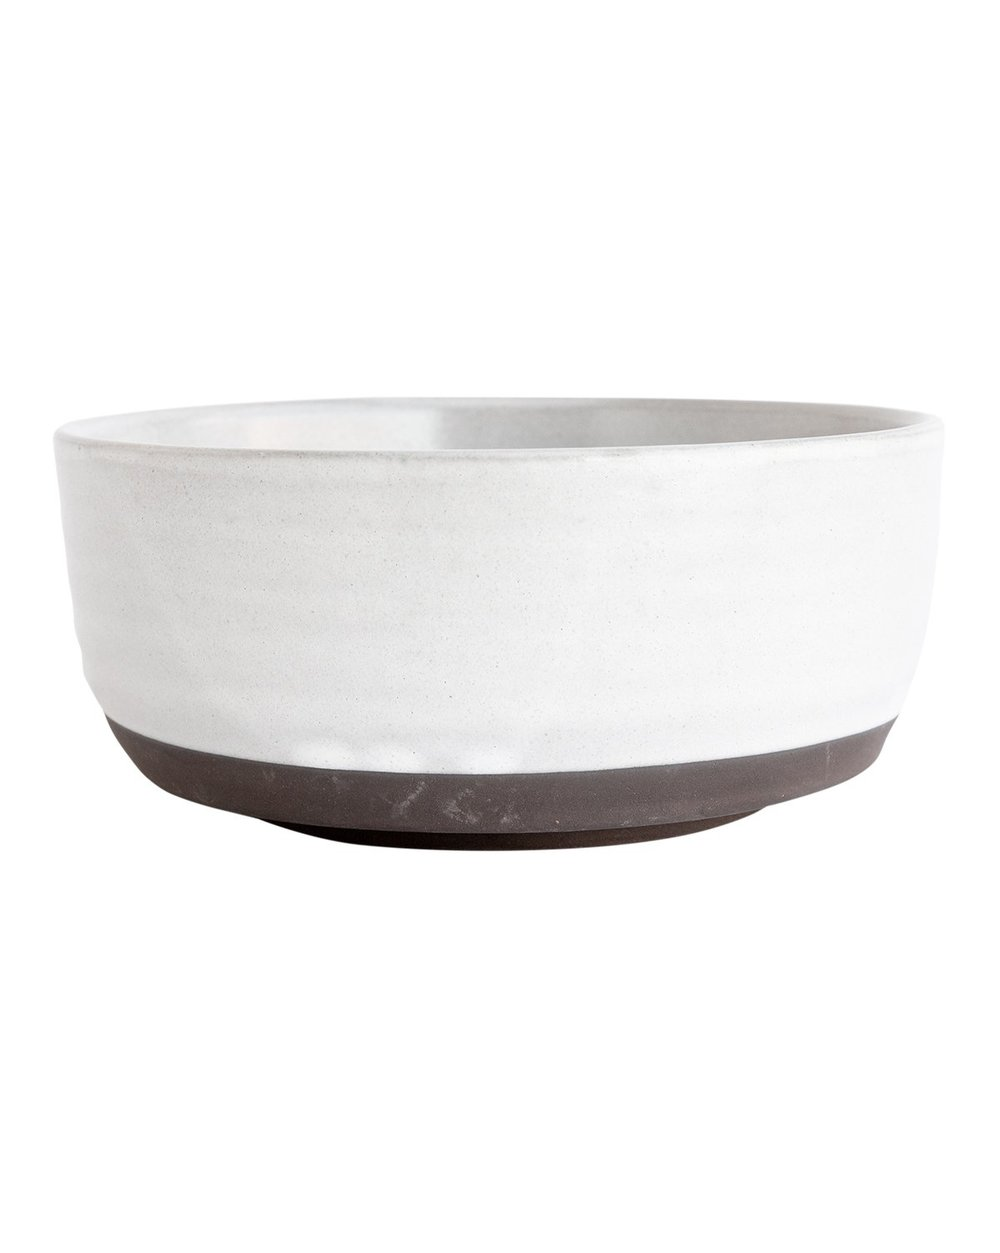 Black_White_Bowl_4.jpg